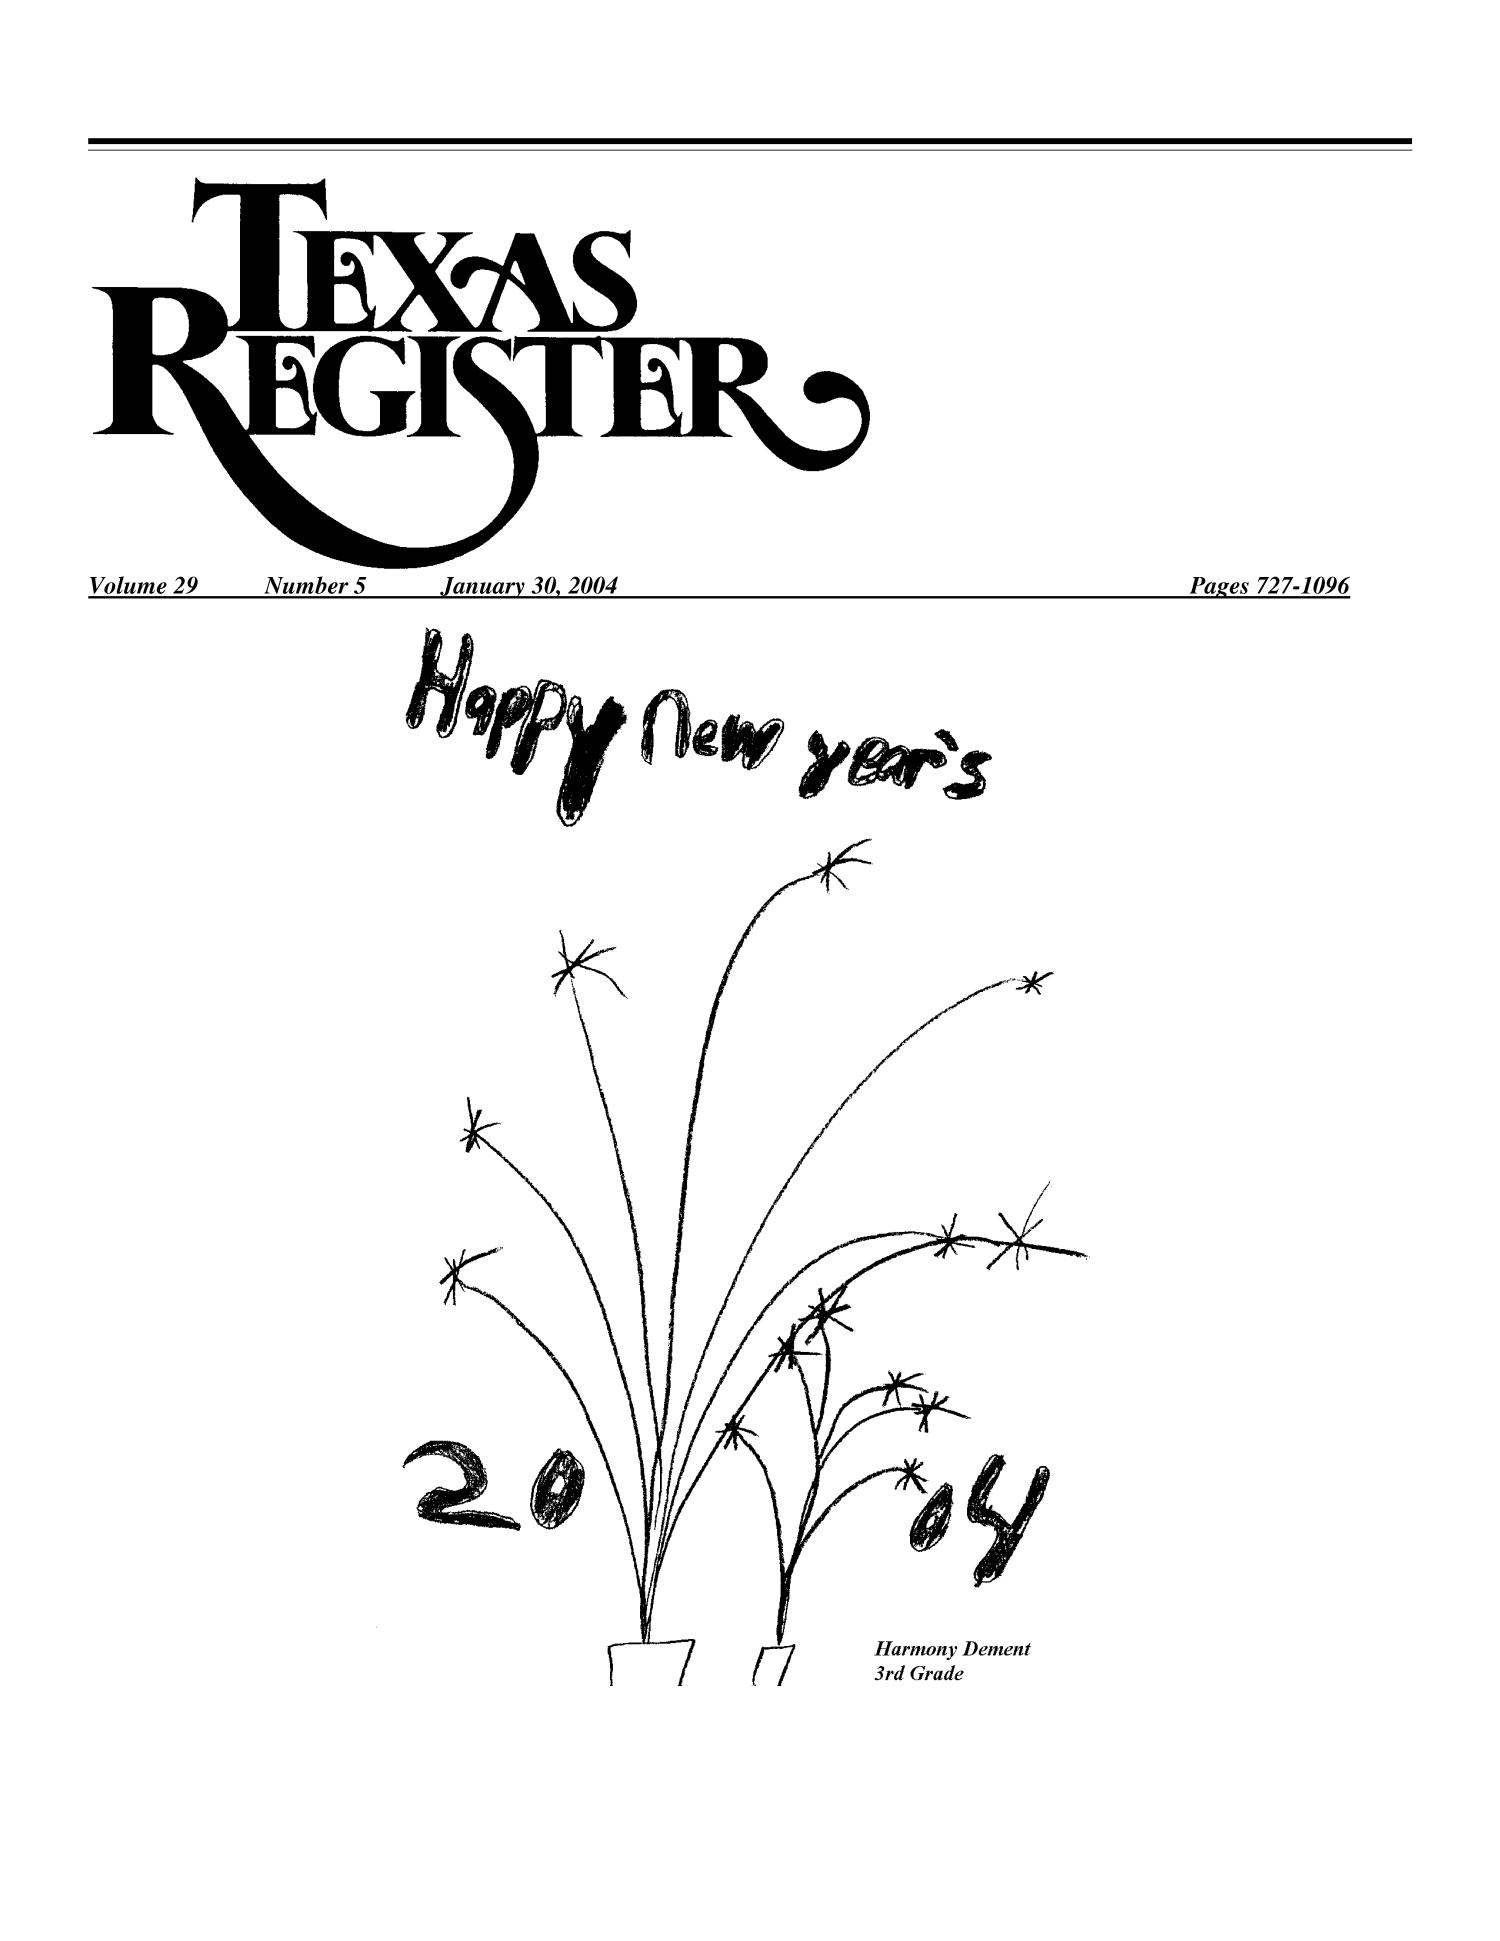 Texas Register, Volume 29, Number 5, Pages 727-1096, January 30, 2004                                                                                                      727